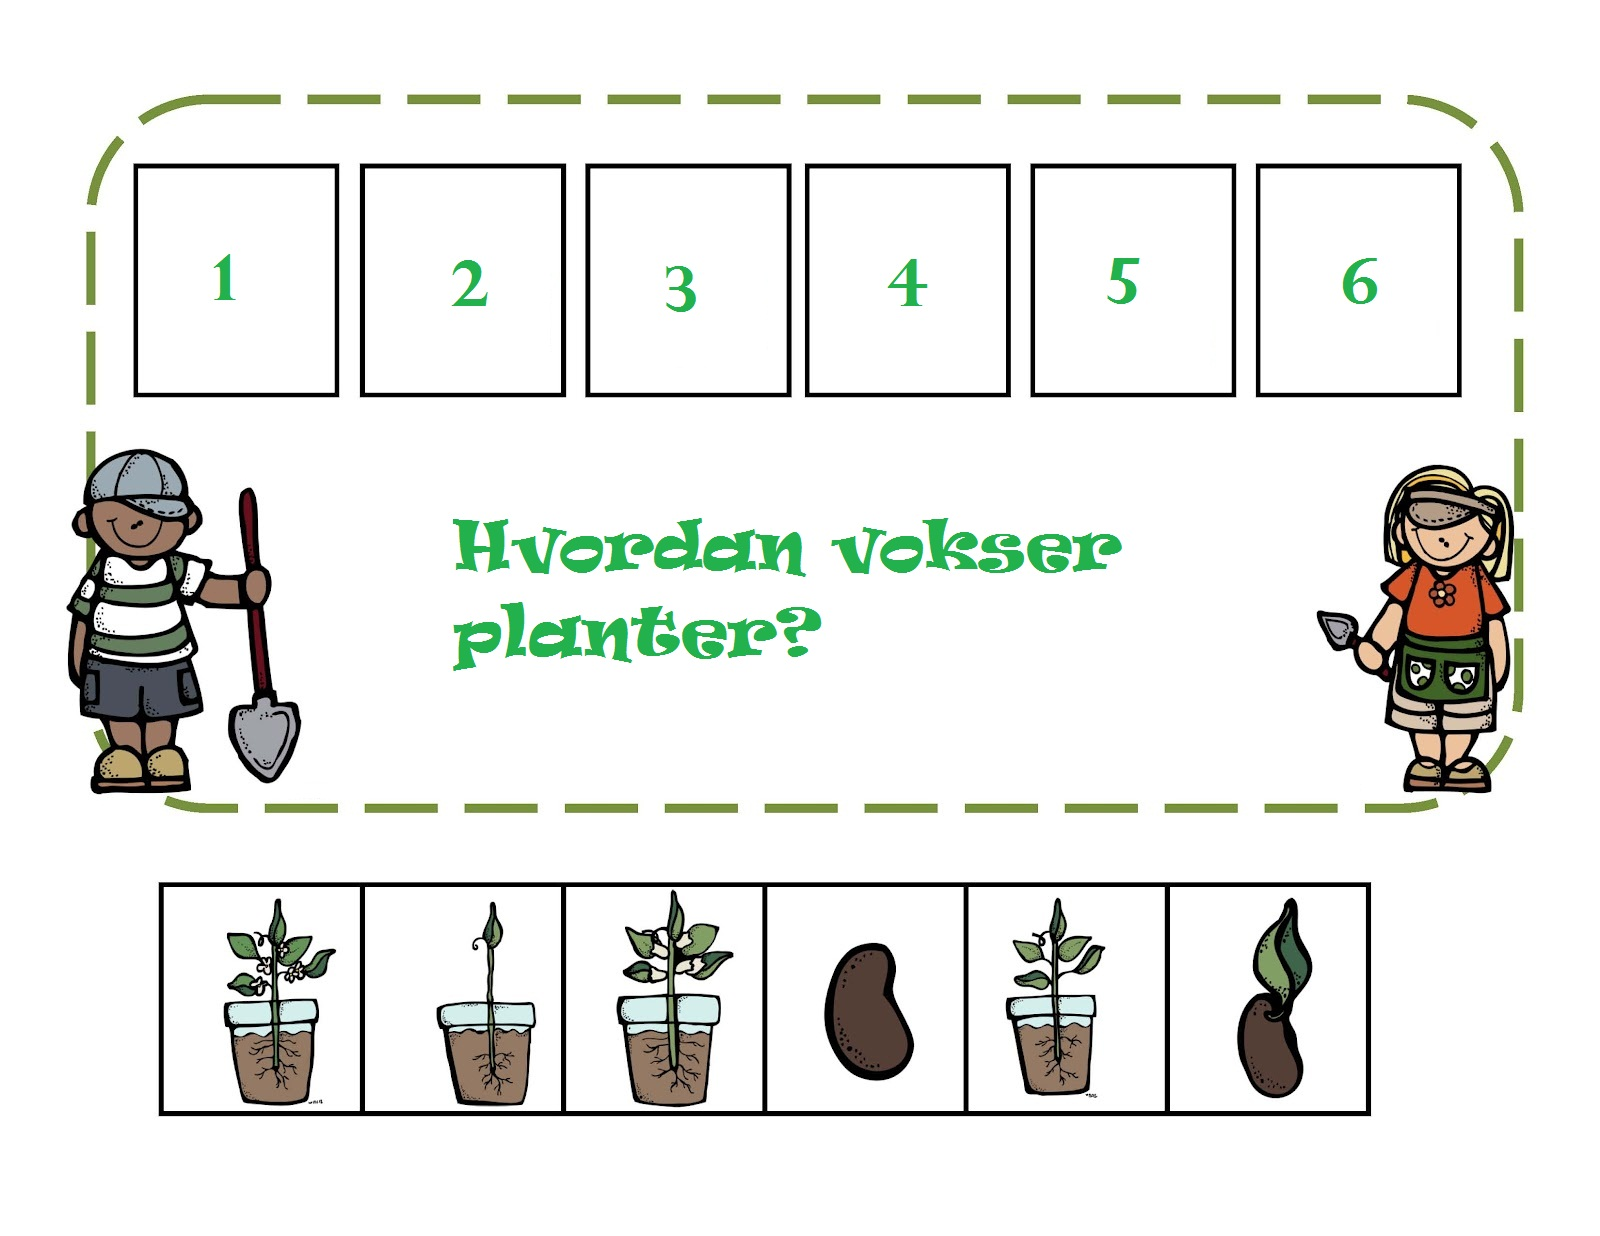 Less Commonly Taught Plant Cycle Sequencing Activity